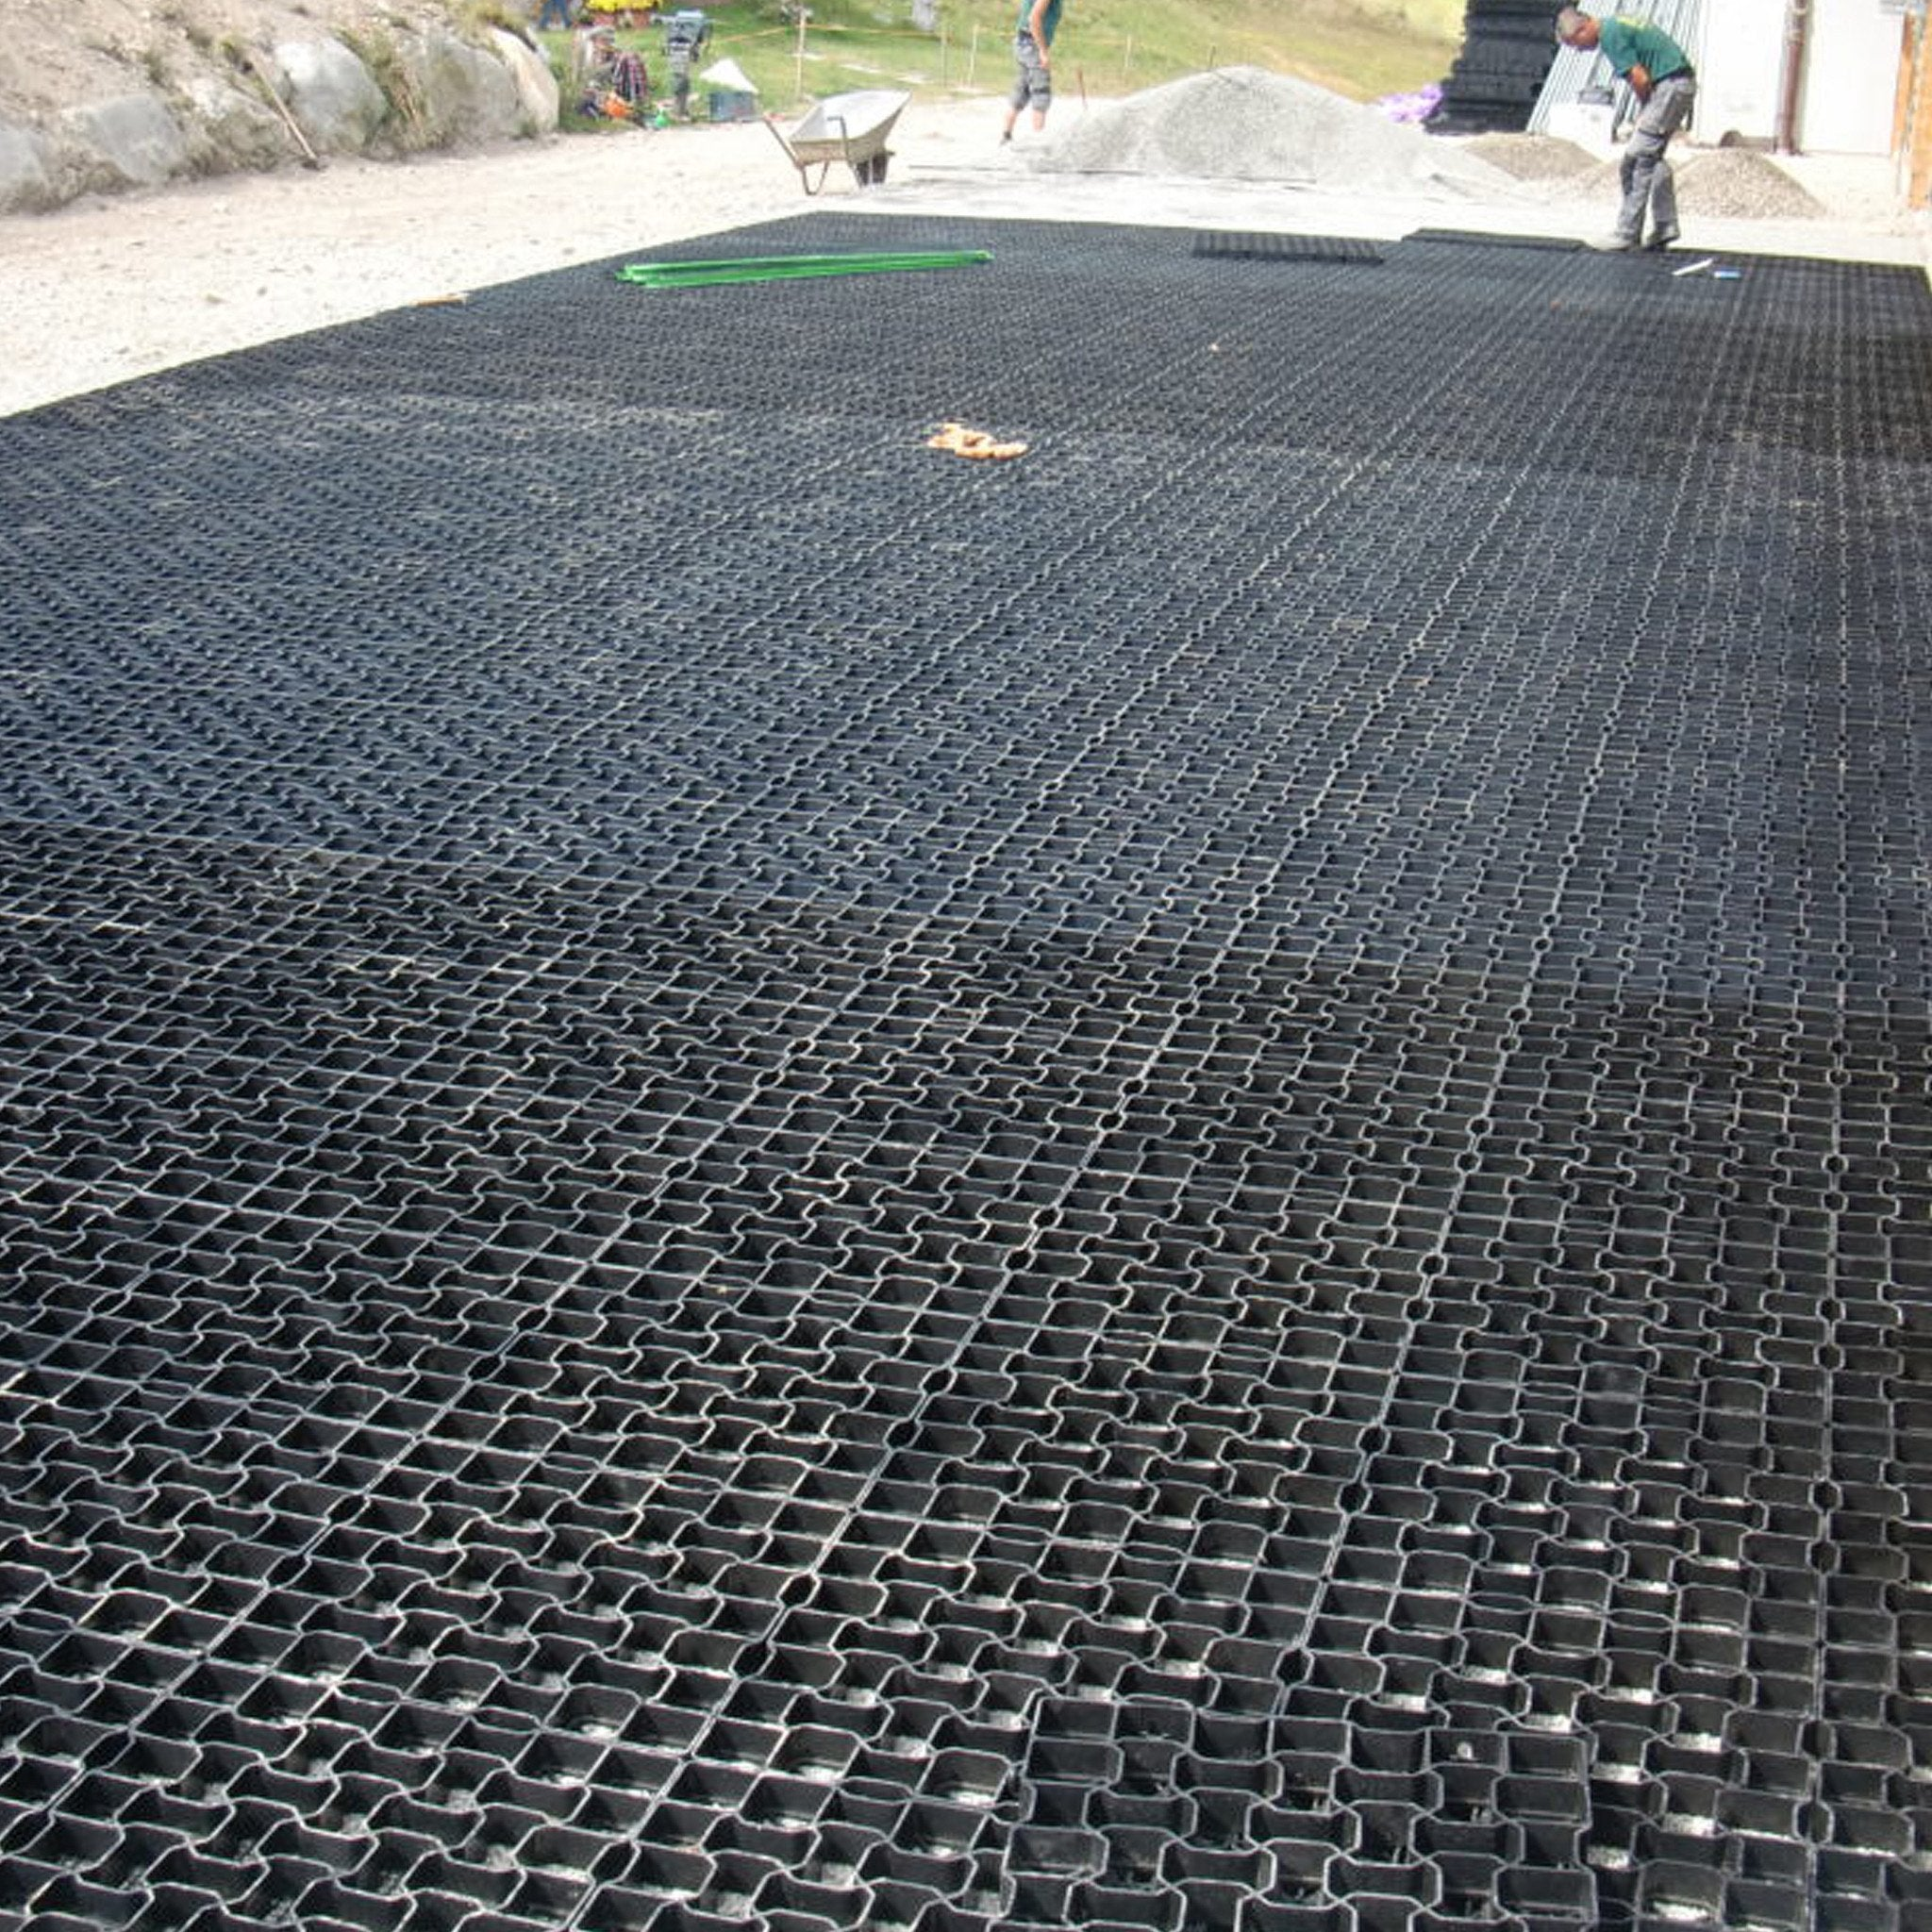 Geogrid Premium Ground Reinforcement Grids - Sustainable Urban Drainage Systems